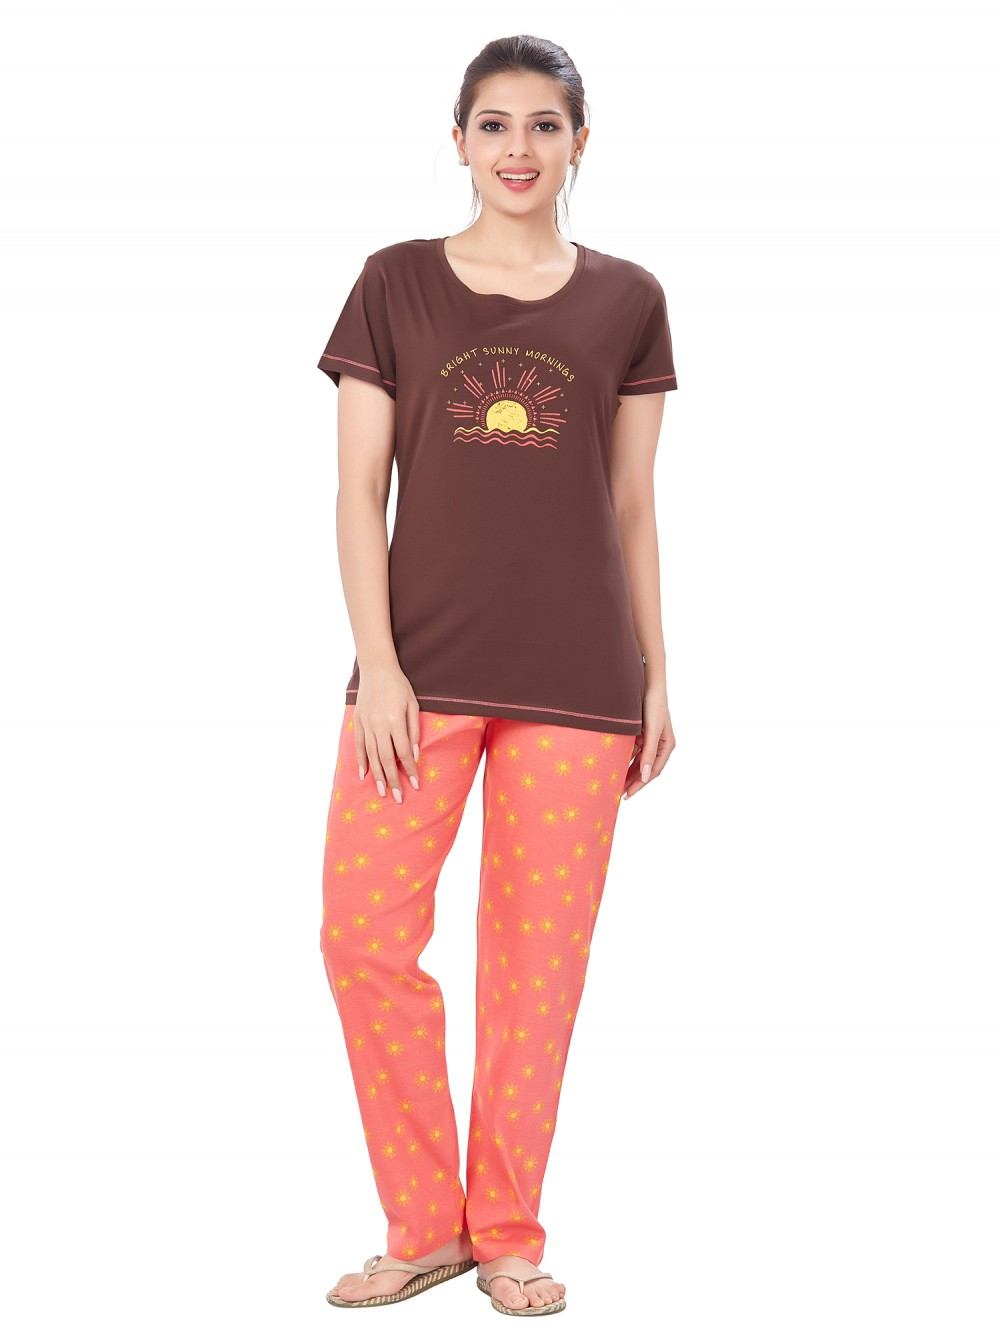 July Nightwear for women Essentials T- Shirt   Pyjama -PC715